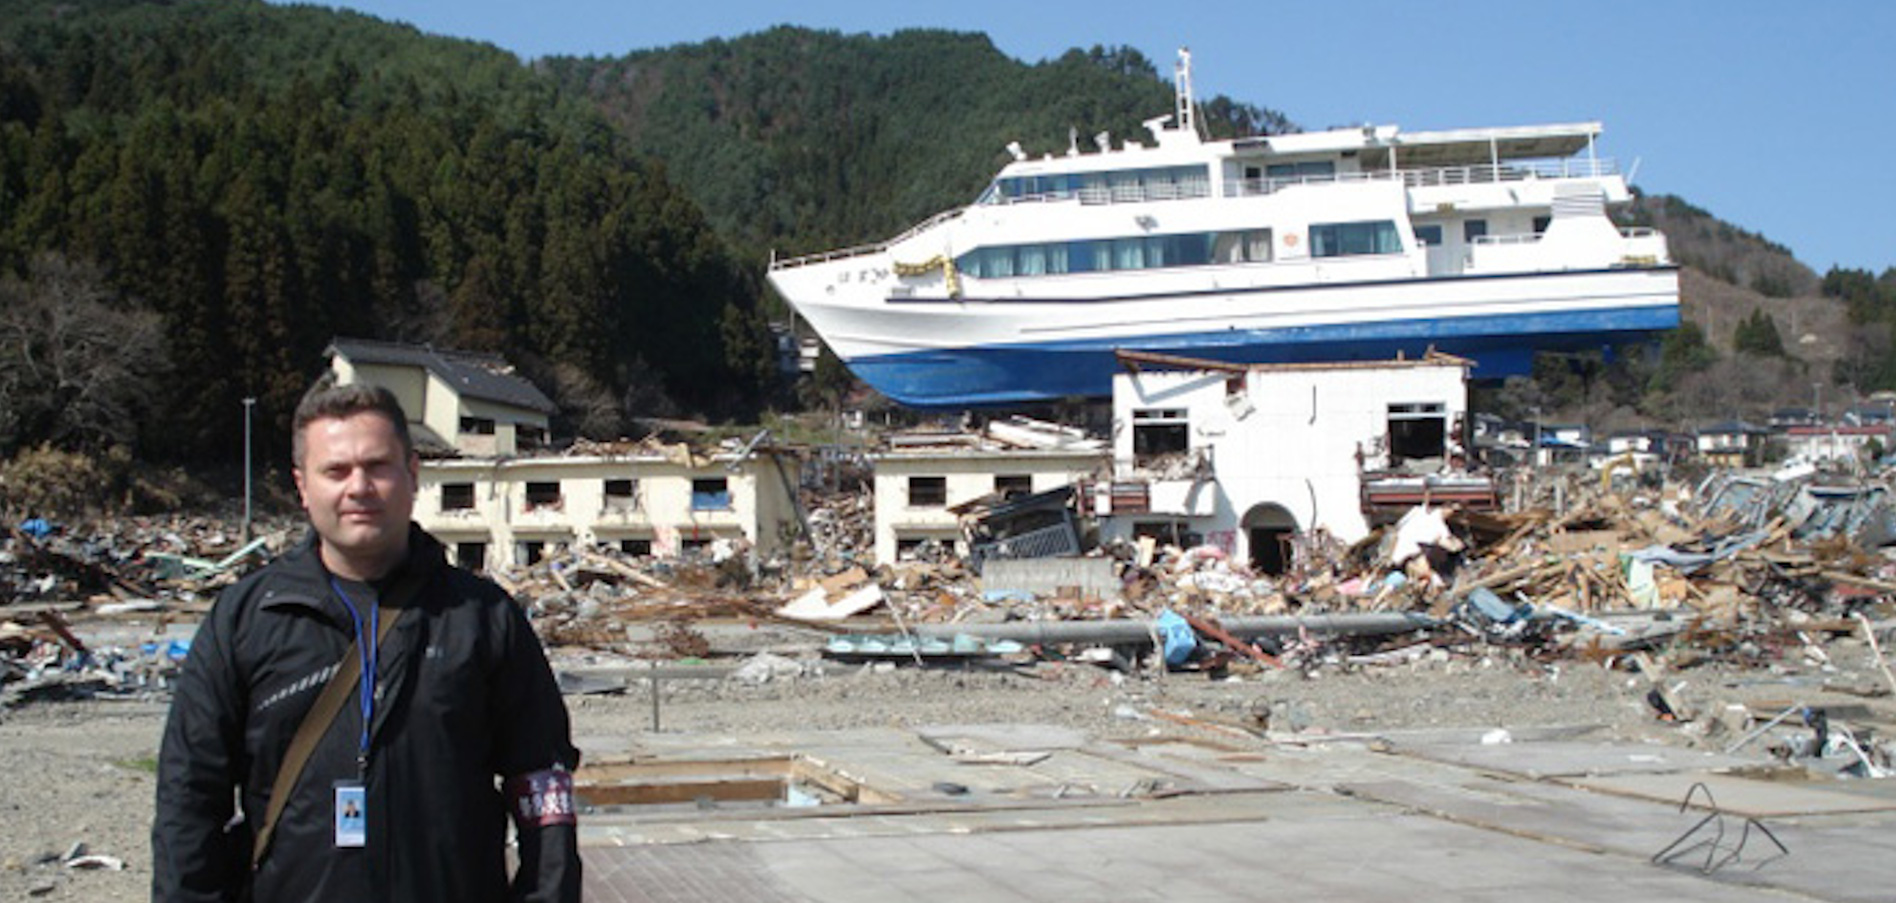 Ioan Nistor poses with infrastructures destroyed during the 2011 Tohoku tsunami